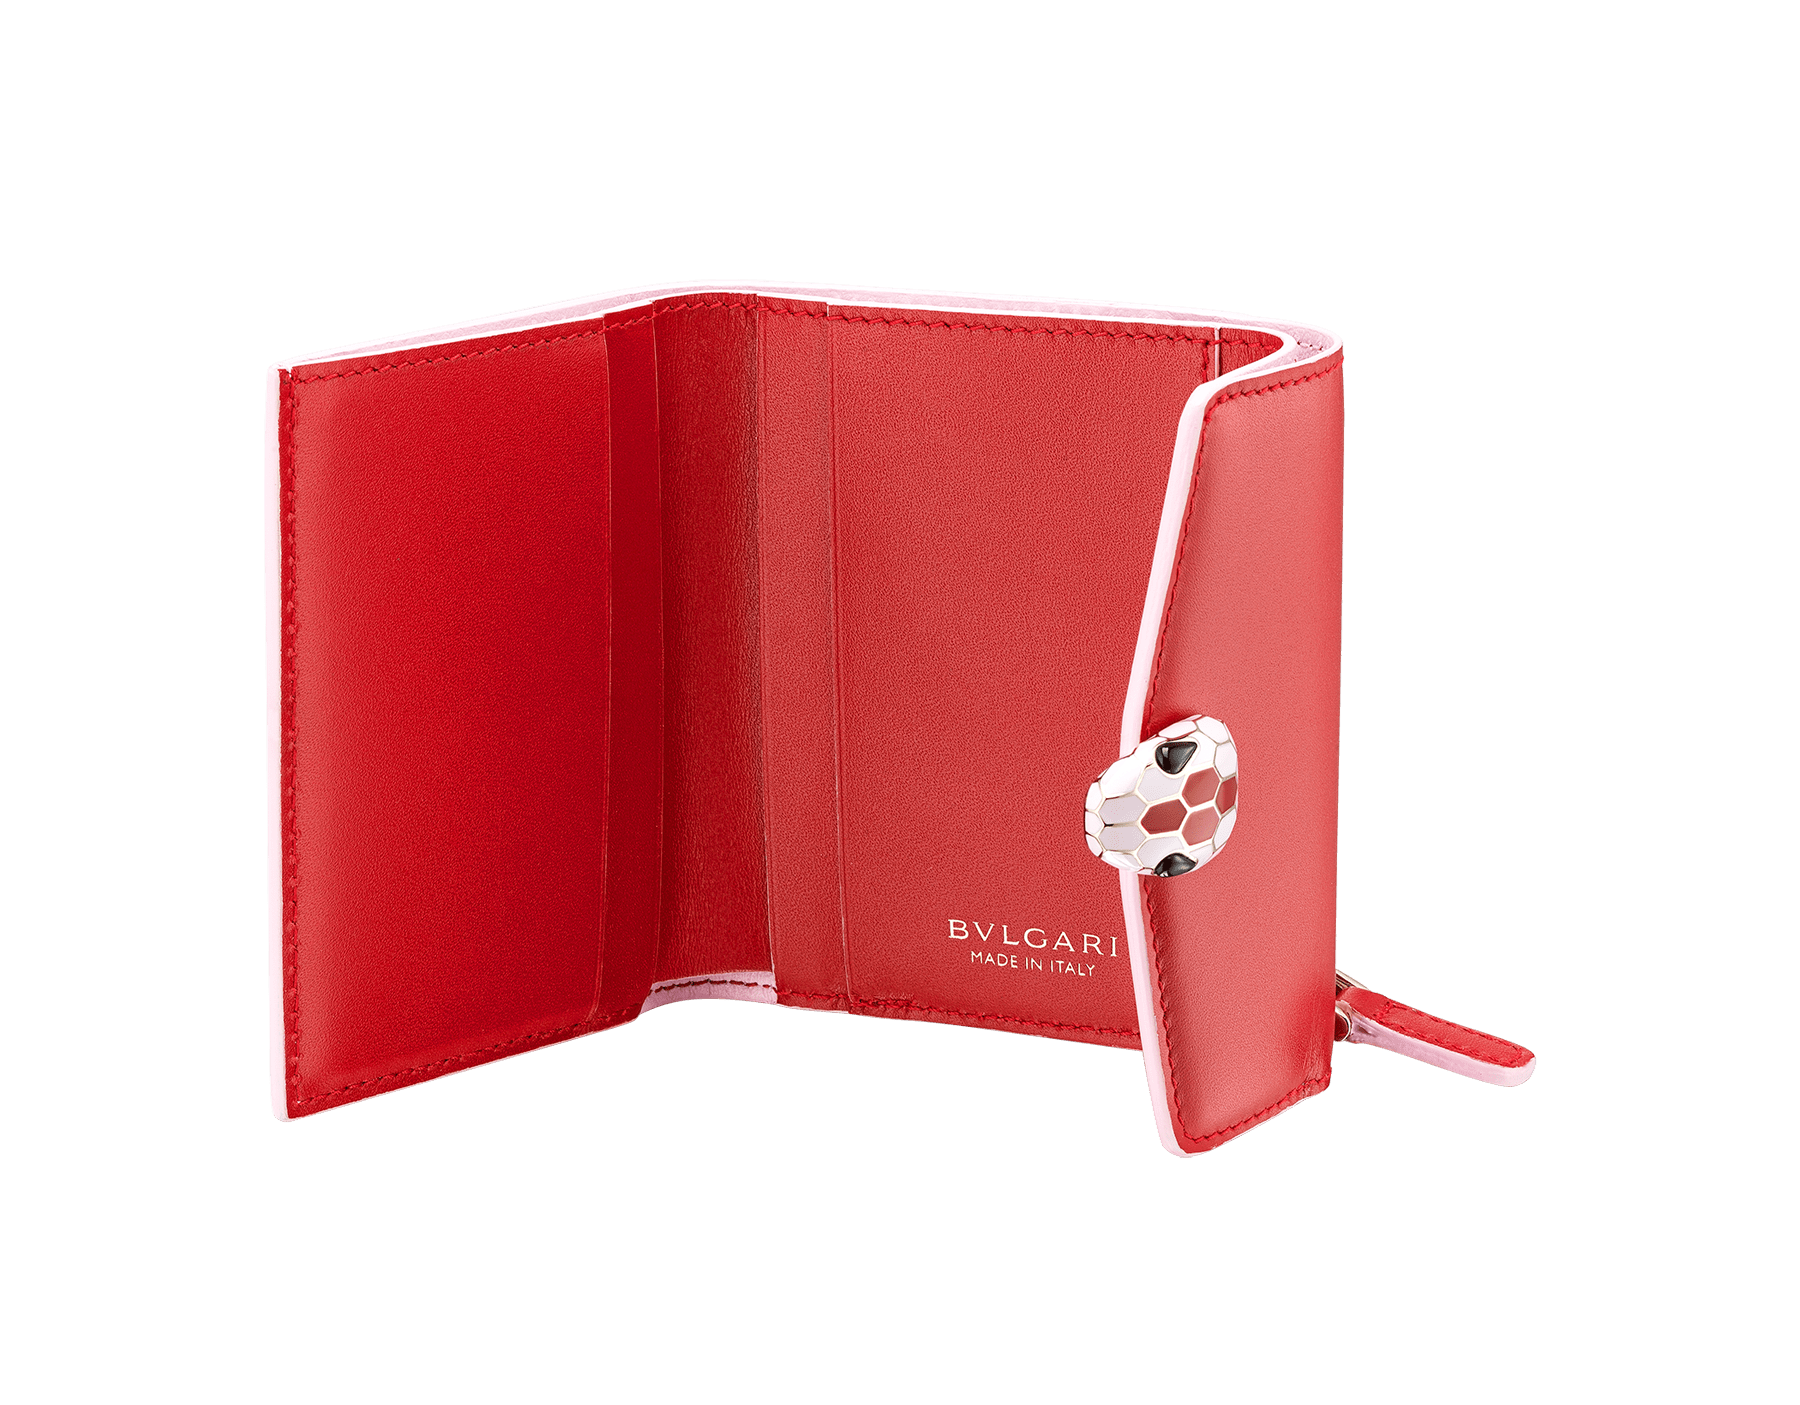 Serpenti Forever slim compact wallet in ruby red calf leather and rosa di francia goatskin. Iconic snakehead stud closure in rosa di francia and ruby red enamel, with black onyx eyes. 289203 image 2